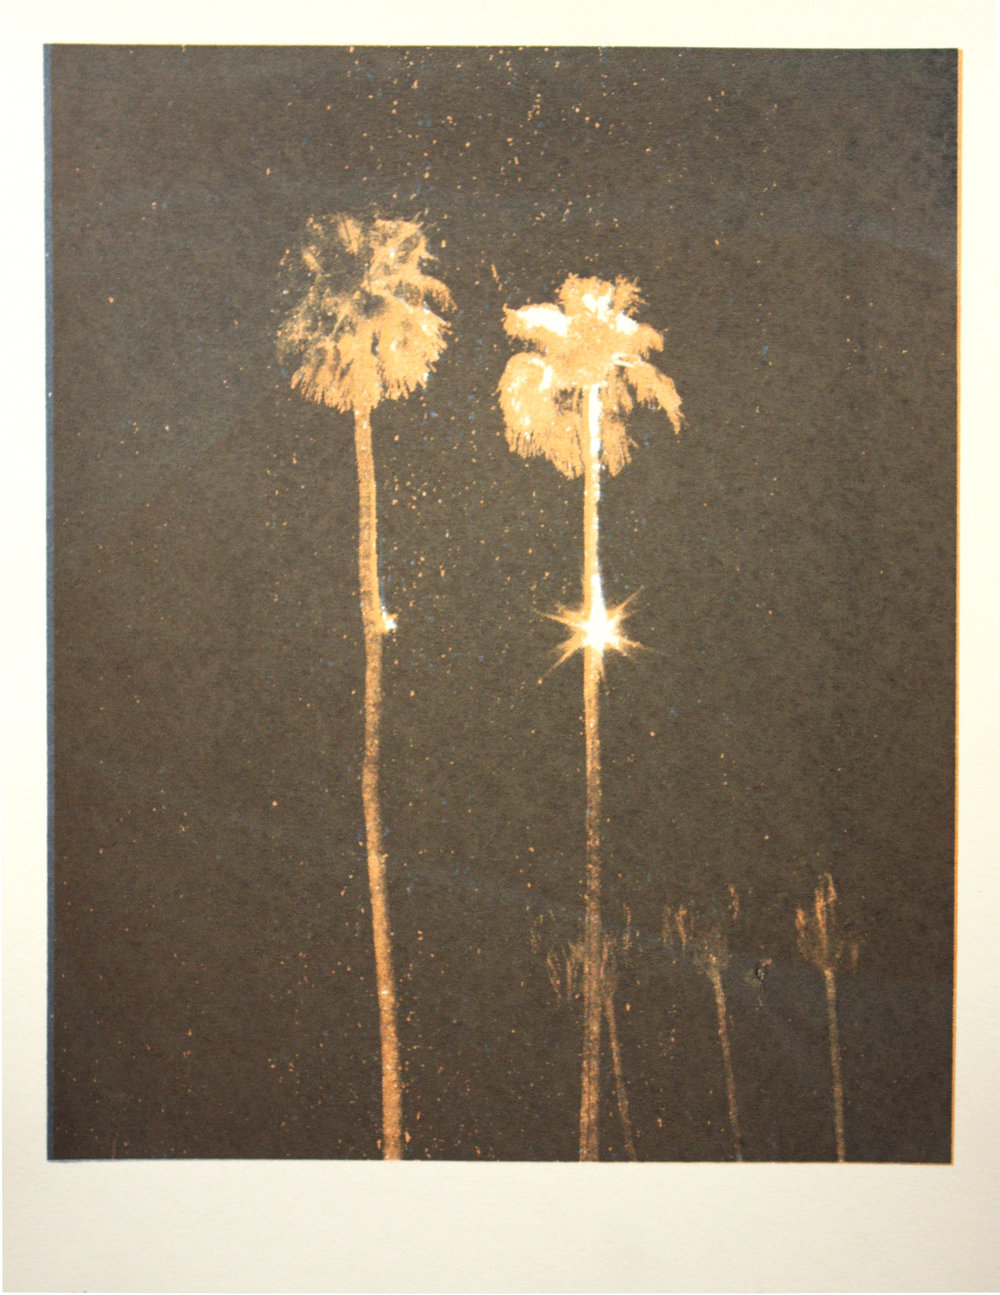 Lights In Trees #1, silkscreen, 2013